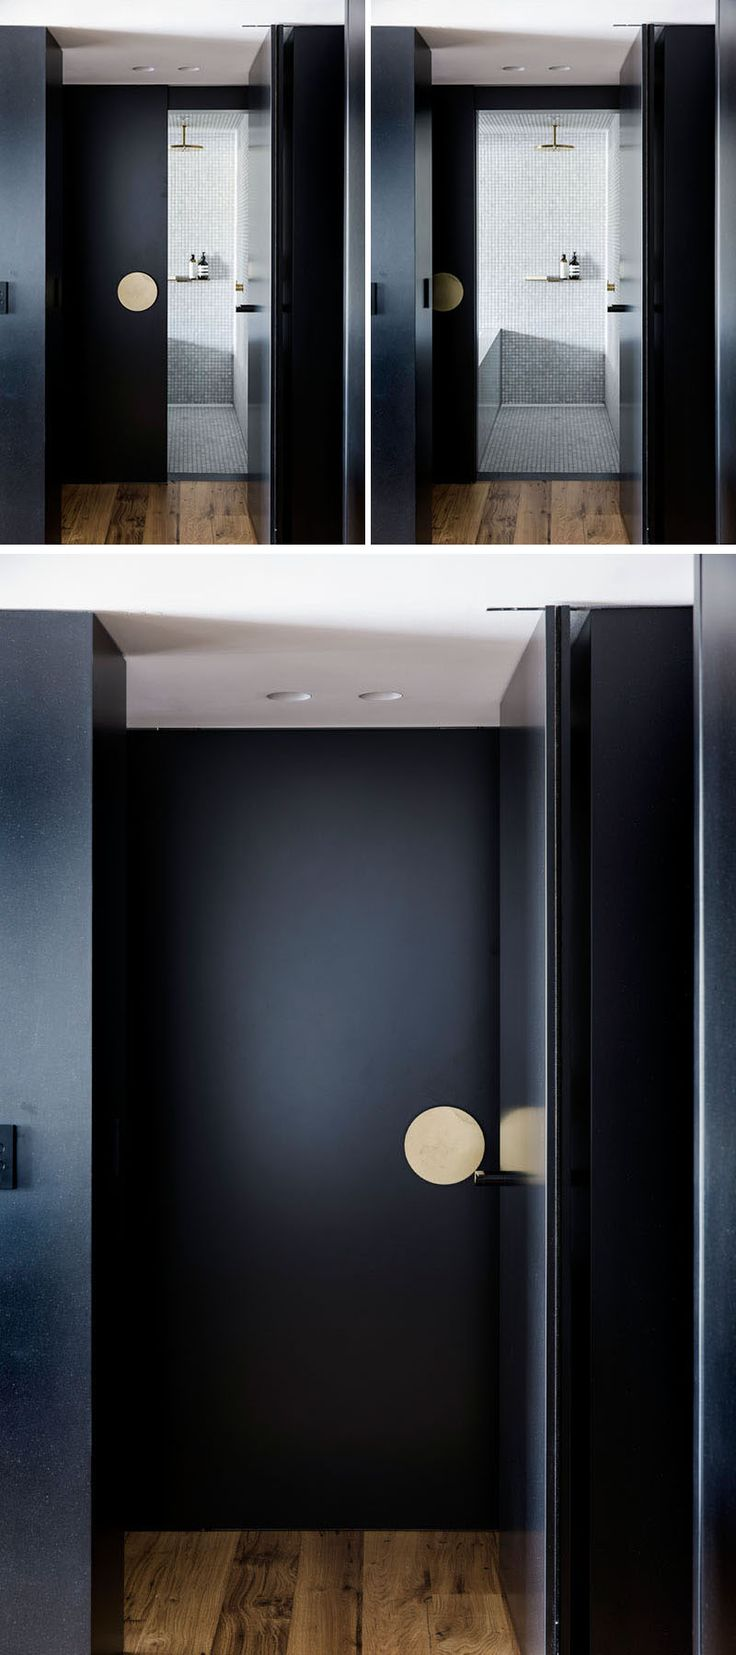 This modern bathroom has a large sliding black door with an over-sized door handle.